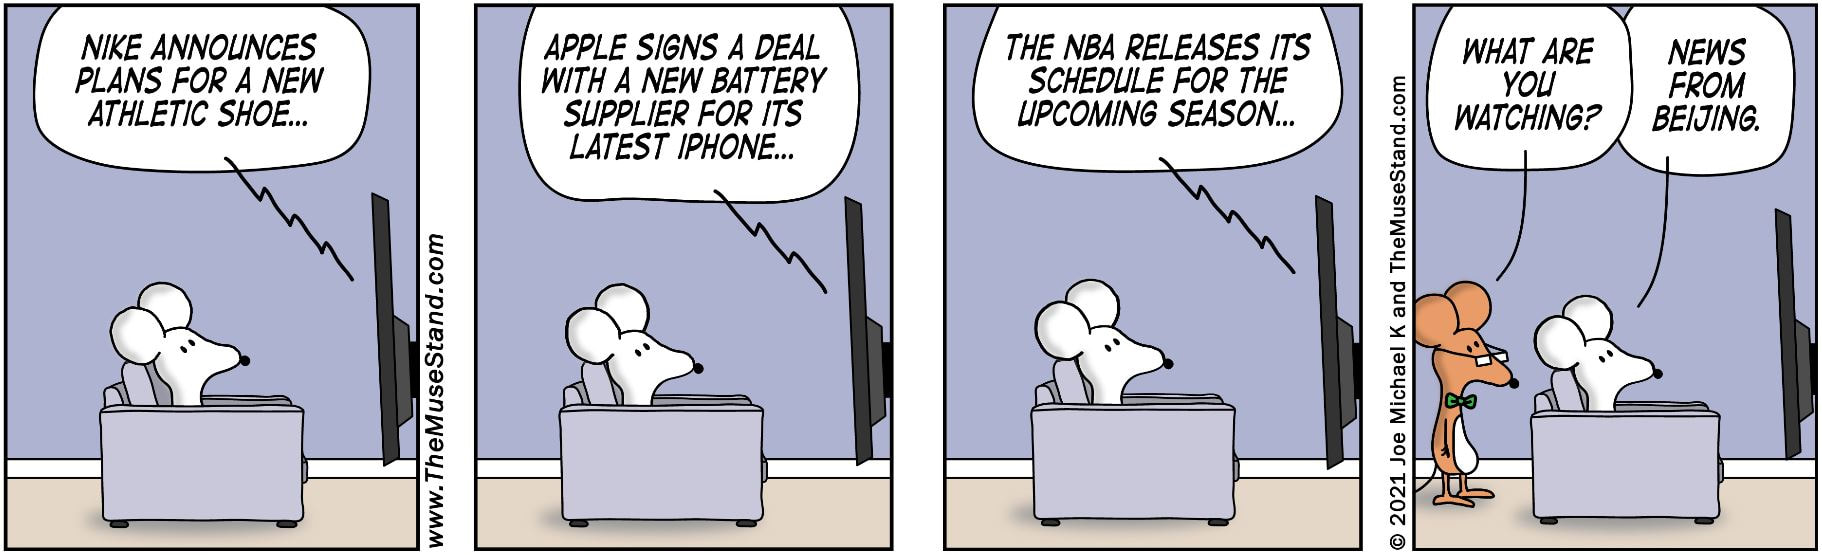 Nike, Apple, And NBA News - The ThinkShop Comics